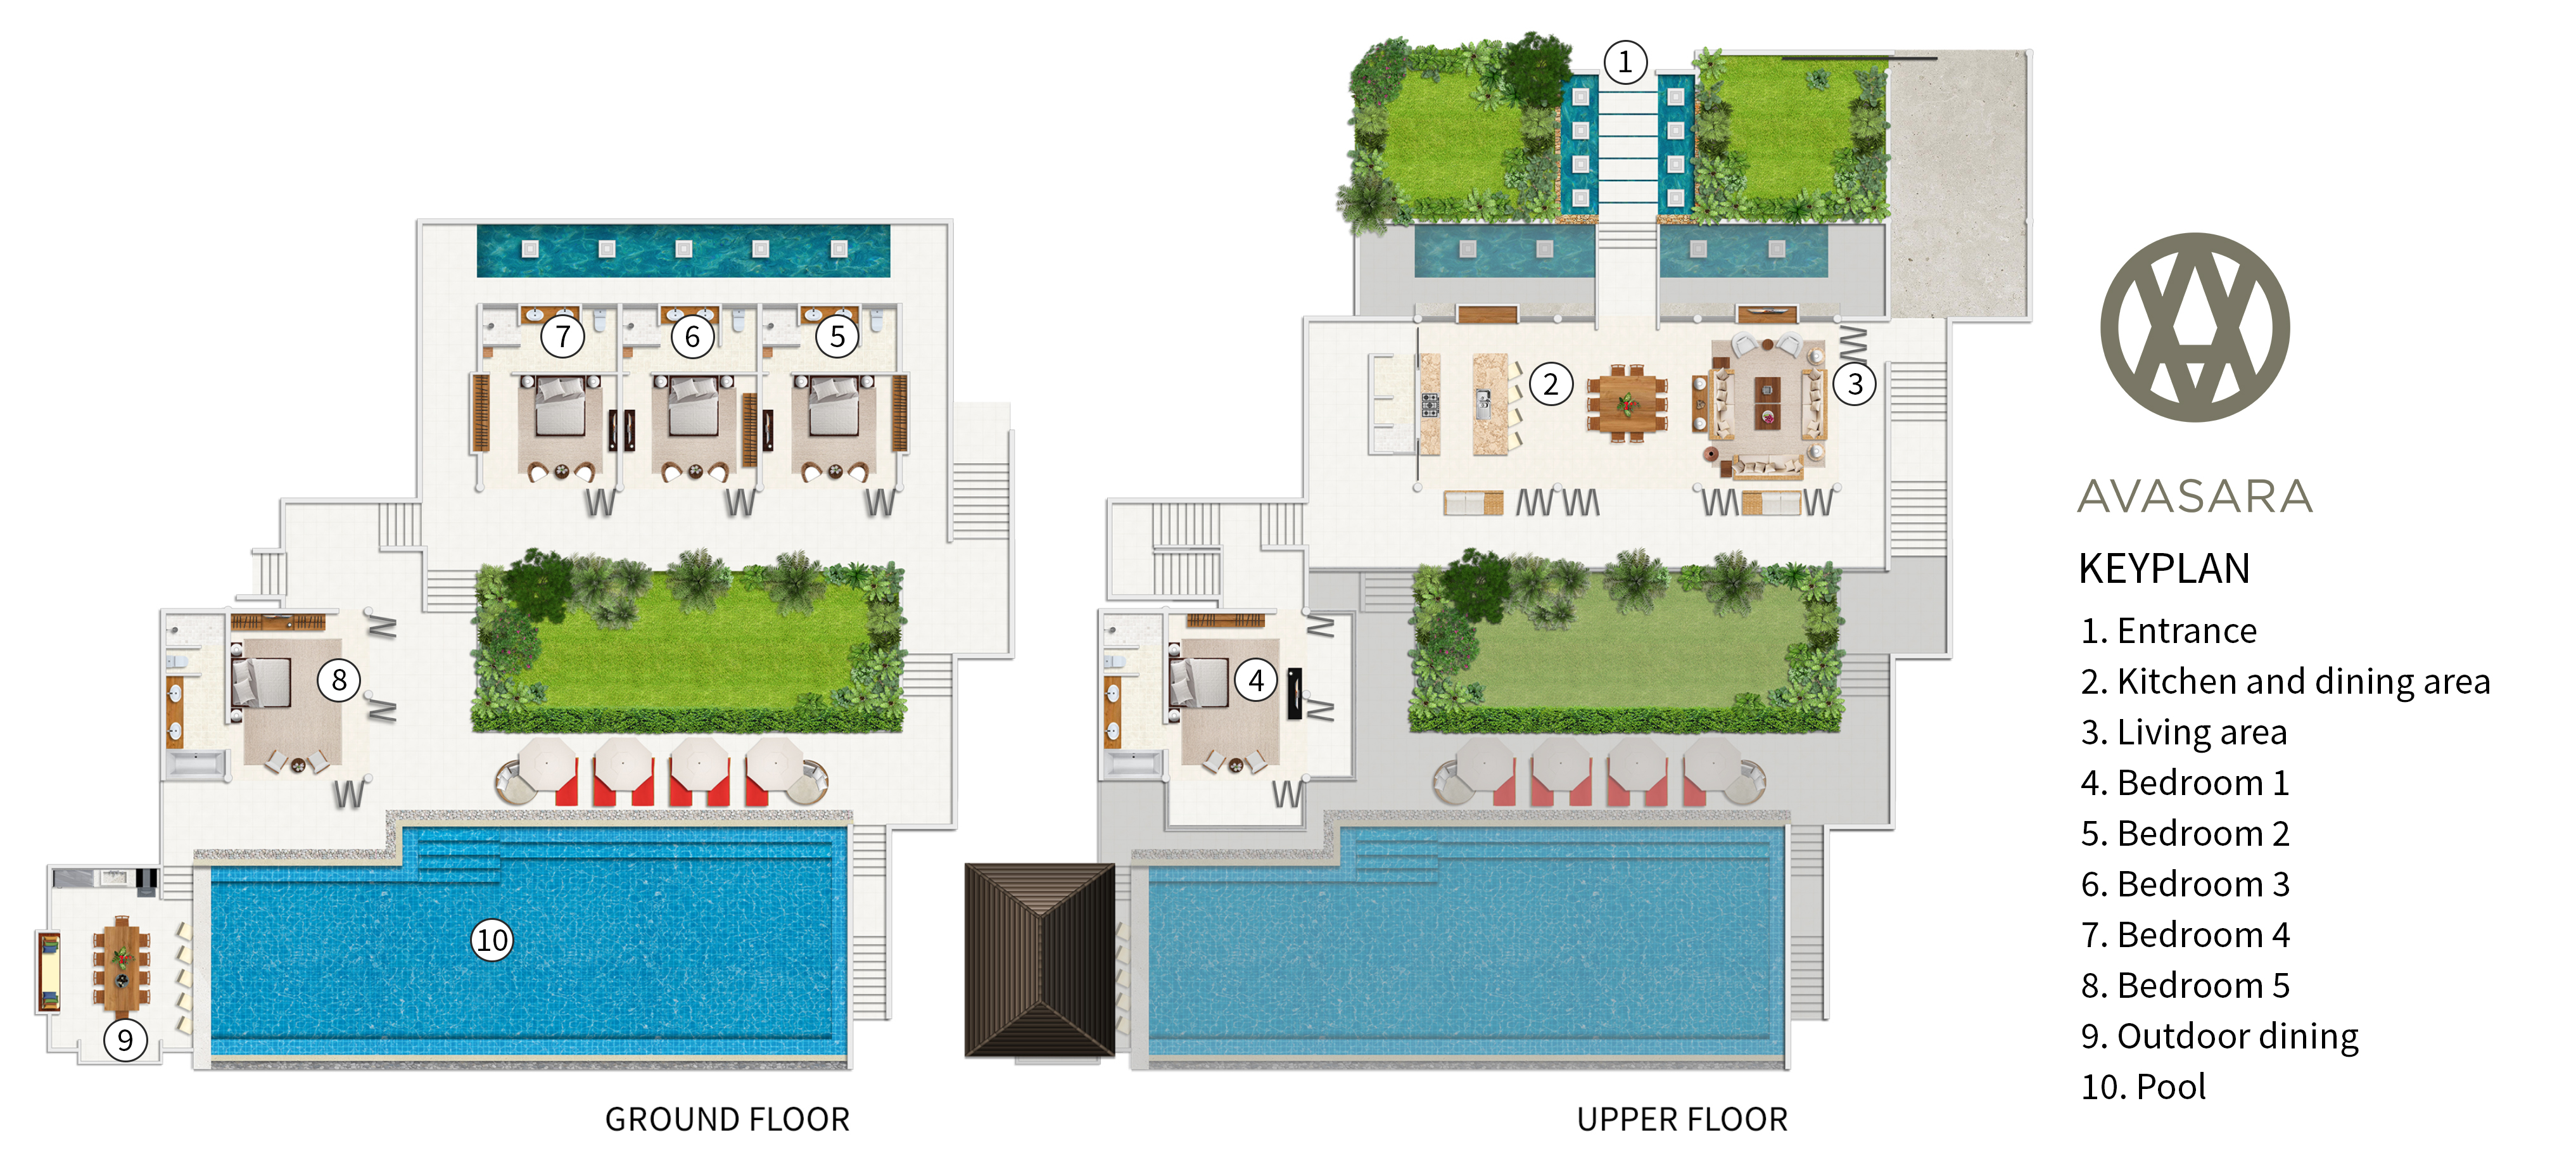 Panacea Retreat - Villa Avasara - Floorplan